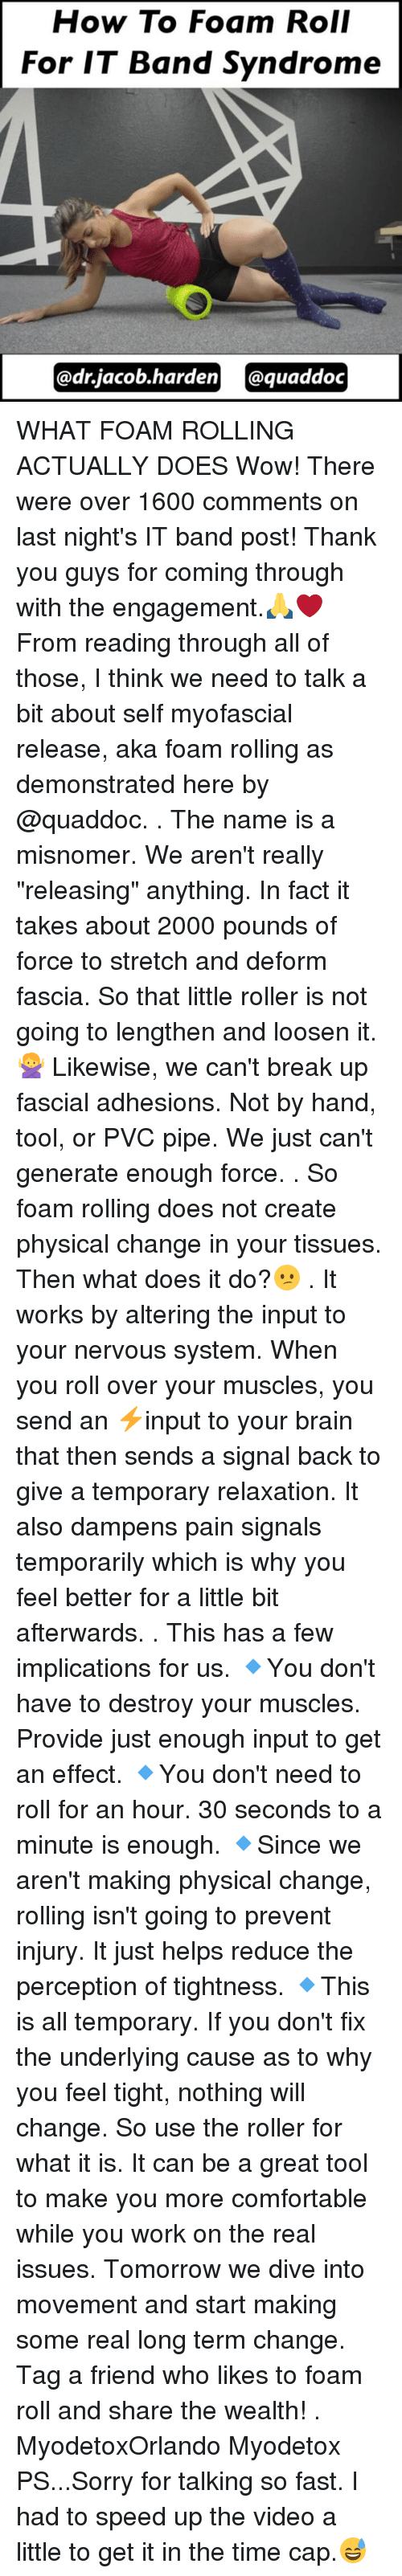 """Rollers: How To Foam Roll  For IT Band Syndrome  @dr.jacob en quaddoc WHAT FOAM ROLLING ACTUALLY DOES Wow! There were over 1600 comments on last night's IT band post! Thank you guys for coming through with the engagement.🙏❤ From reading through all of those, I think we need to talk a bit about self myofascial release, aka foam rolling as demonstrated here by @quaddoc. . The name is a misnomer. We aren't really """"releasing"""" anything. In fact it takes about 2000 pounds of force to stretch and deform fascia. So that little roller is not going to lengthen and loosen it.🙅 Likewise, we can't break up fascial adhesions. Not by hand, tool, or PVC pipe. We just can't generate enough force. . So foam rolling does not create physical change in your tissues. Then what does it do?😕 . It works by altering the input to your nervous system. When you roll over your muscles, you send an ⚡input to your brain that then sends a signal back to give a temporary relaxation. It also dampens pain signals temporarily which is why you feel better for a little bit afterwards. . This has a few implications for us. 🔹You don't have to destroy your muscles. Provide just enough input to get an effect. 🔹You don't need to roll for an hour. 30 seconds to a minute is enough. 🔹Since we aren't making physical change, rolling isn't going to prevent injury. It just helps reduce the perception of tightness. 🔹This is all temporary. If you don't fix the underlying cause as to why you feel tight, nothing will change. So use the roller for what it is. It can be a great tool to make you more comfortable while you work on the real issues. Tomorrow we dive into movement and start making some real long term change. Tag a friend who likes to foam roll and share the wealth! . MyodetoxOrlando Myodetox PS...Sorry for talking so fast. I had to speed up the video a little to get it in the time cap.😅"""